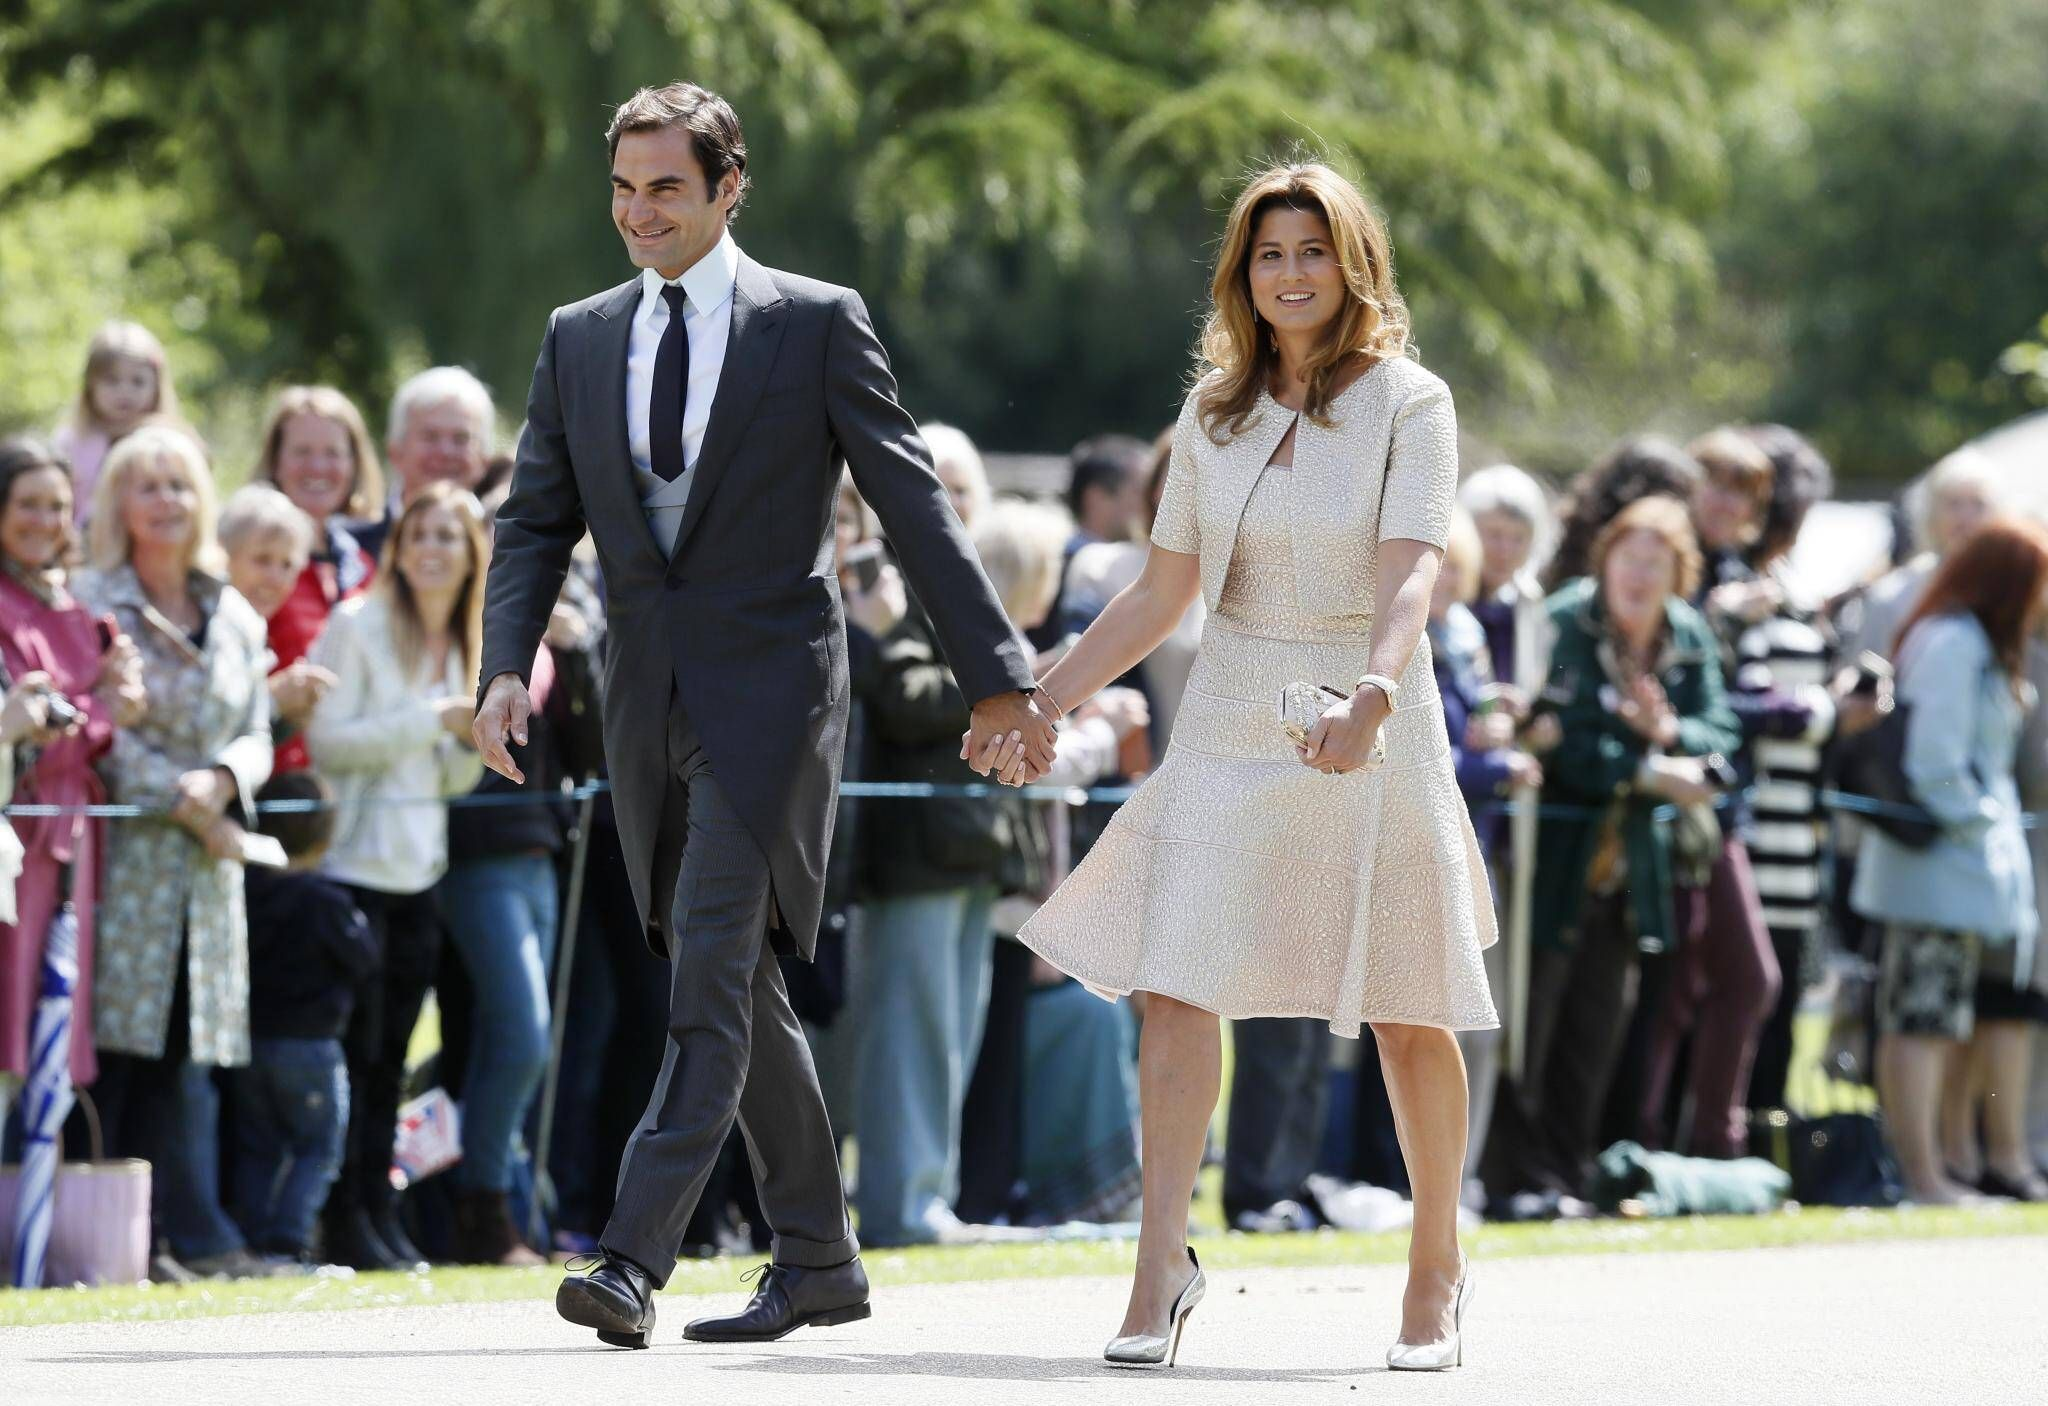 Facts You May Not Know About Maestro Roger Federer In 2020 Pippa Middleton Wedding Pippa Middleton Man And Wife